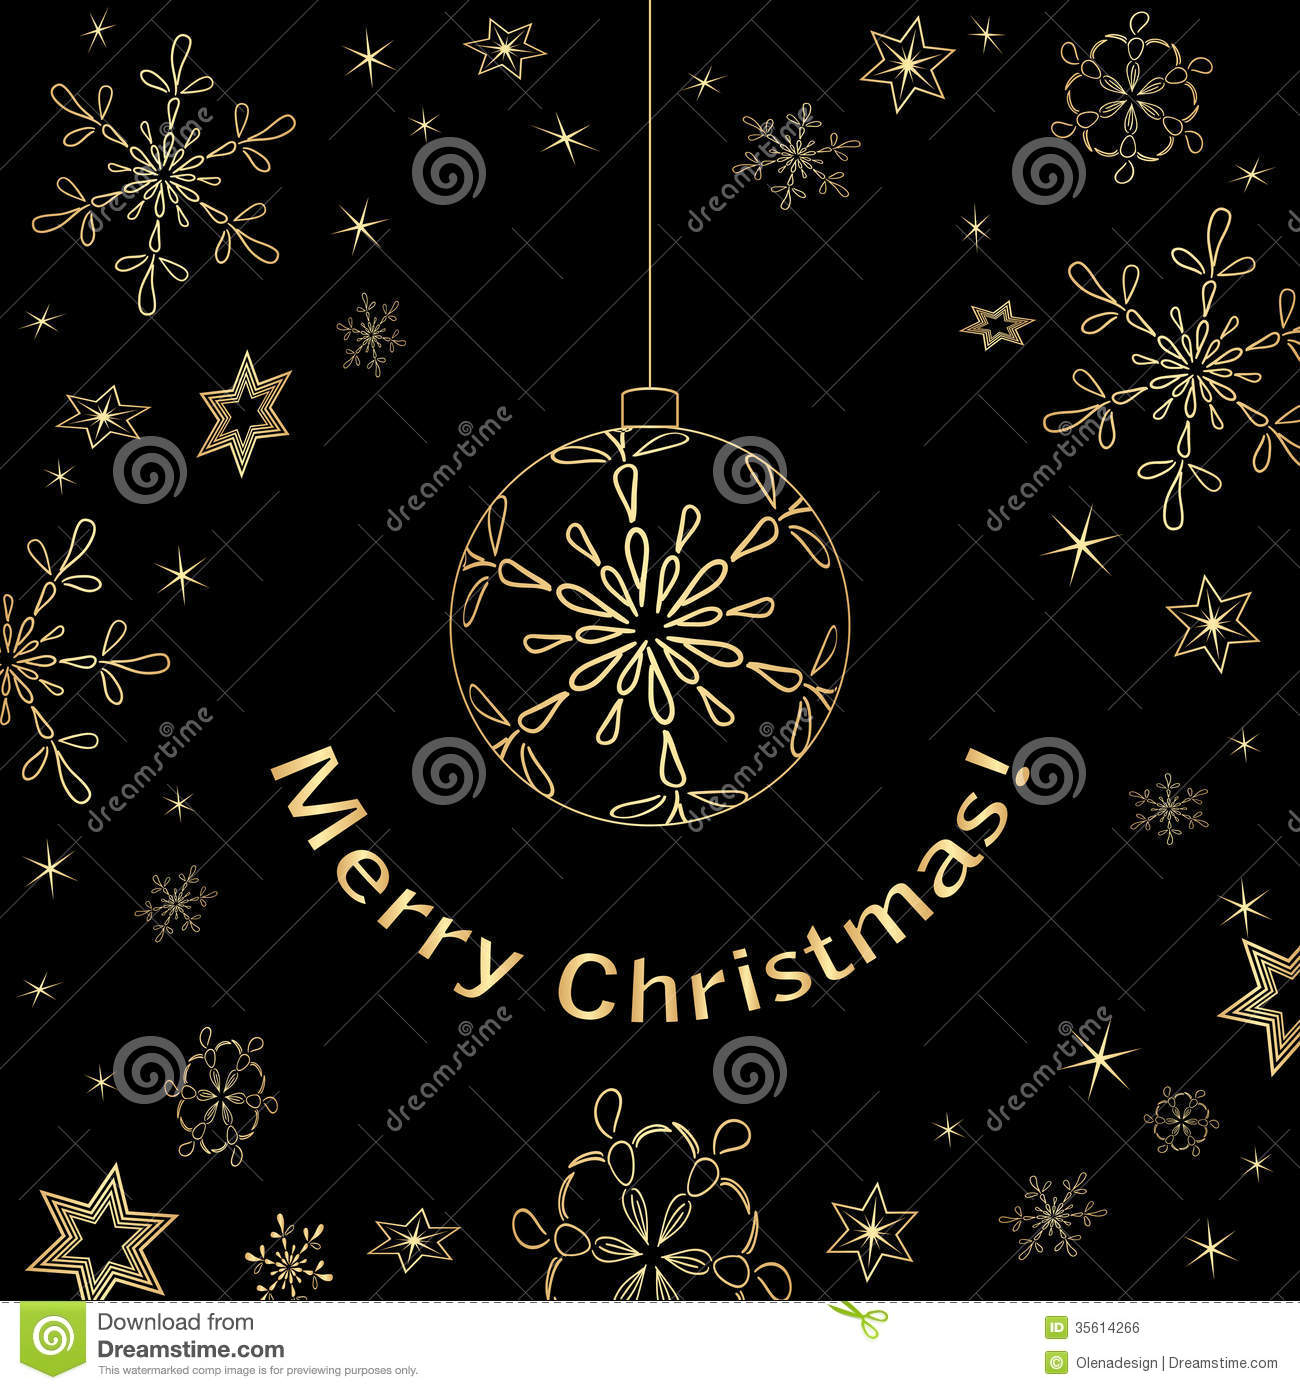 Black and gold christmas decorations - Black Card Christmas Gold